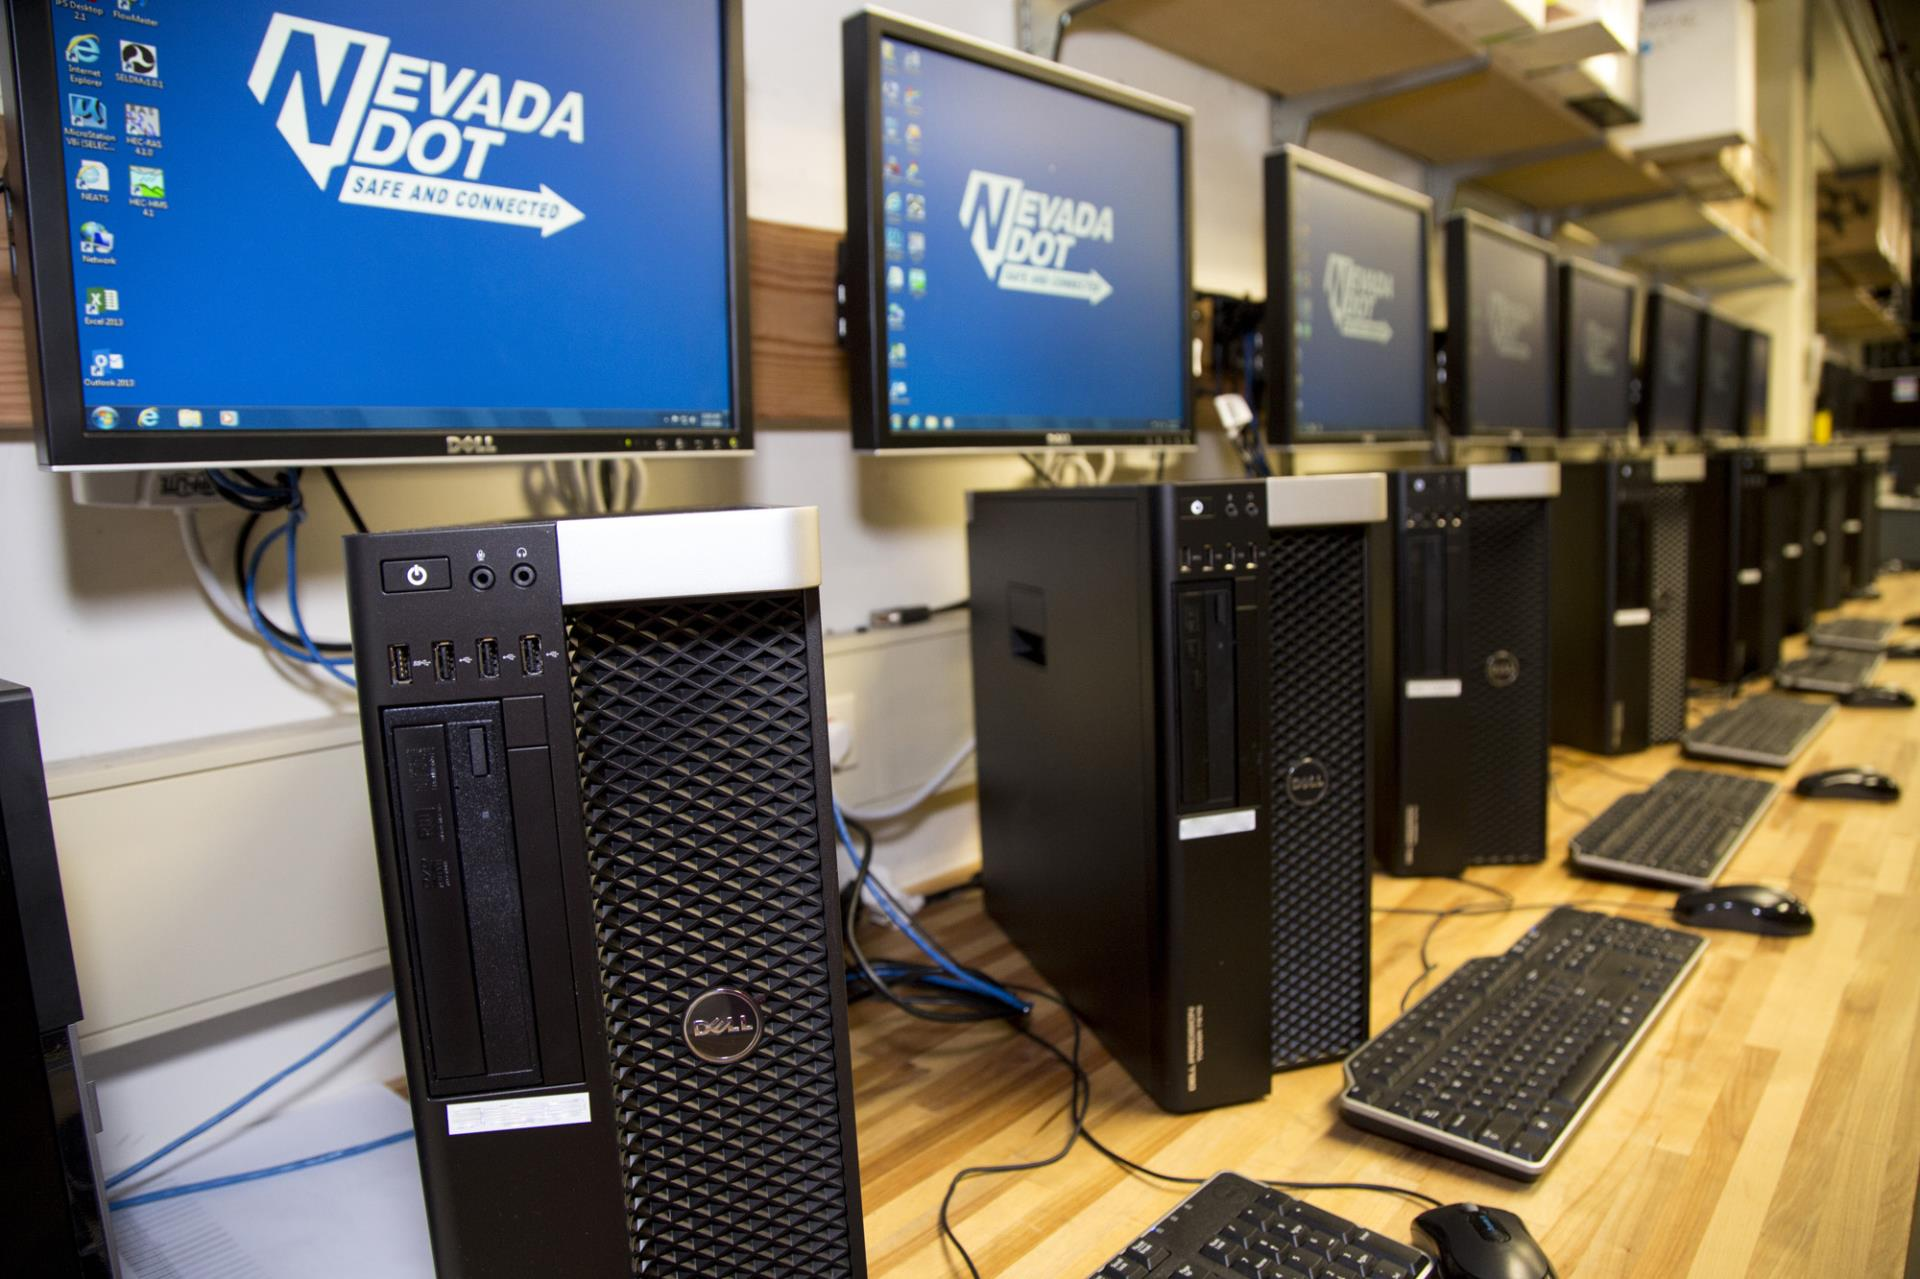 A row of computers with the blue NDOT logo on them